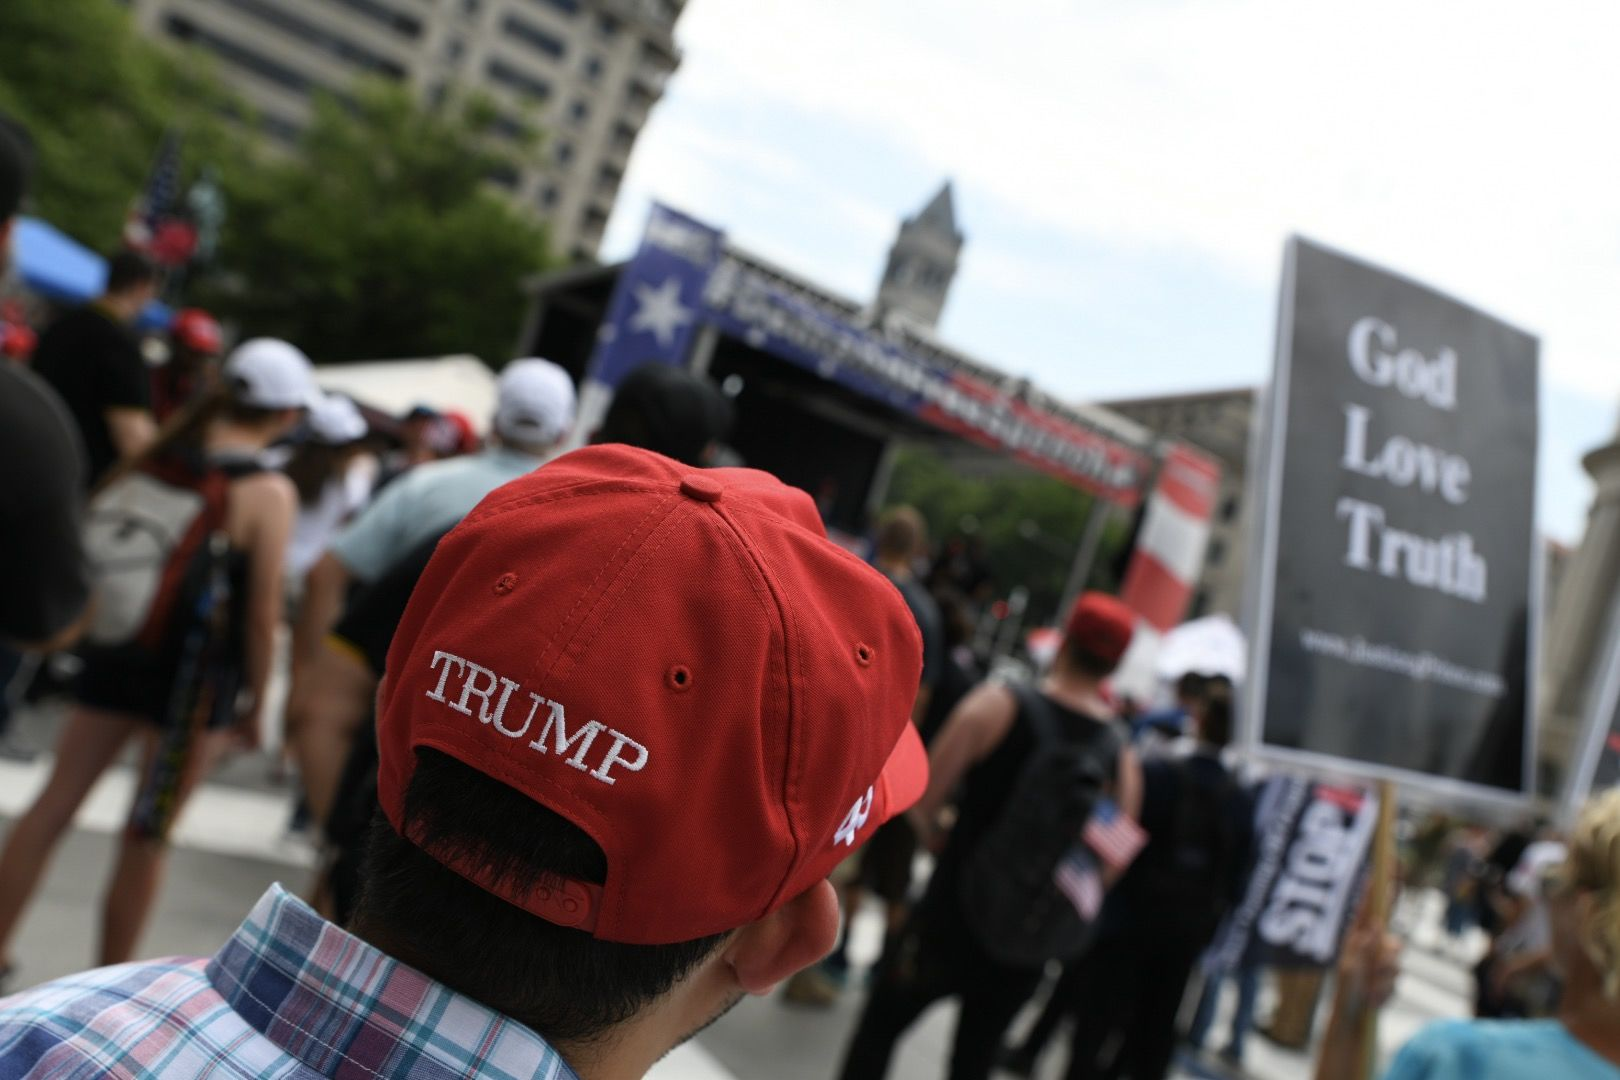 "A supporter of President Donald Trump attends the right-wing ""Demand Free Speech"" rally in Washington D.C.'s Freedom Plaza on July 6, 2019. Trump supporters and anti-fascist organizers held dueling rallies across the street from each other, leading to high tensions as D.C. and U.S. Park Police largely held the peace. (WTOP/Alejandro Alvarez)"